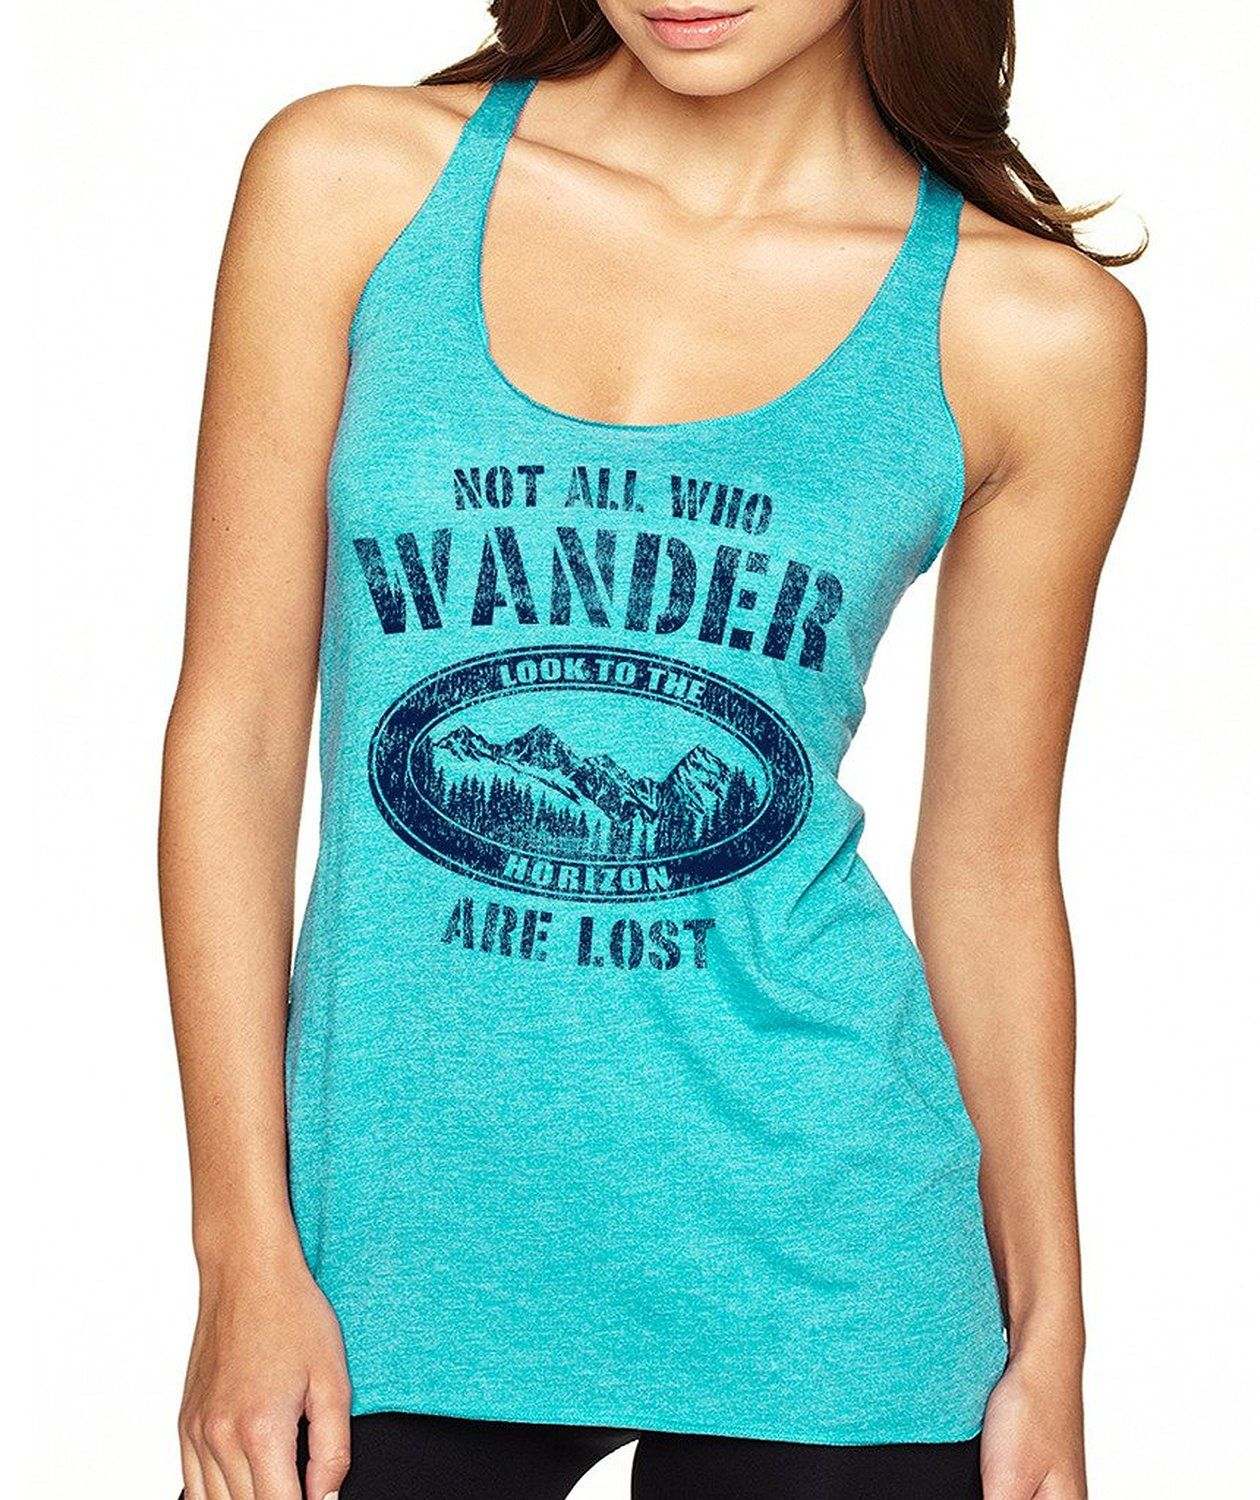 199165fdfab1ef Amazon.com  SignatureTshirts Women s Not all who Wander Are Lost Racerback Tank  Top  Clothing